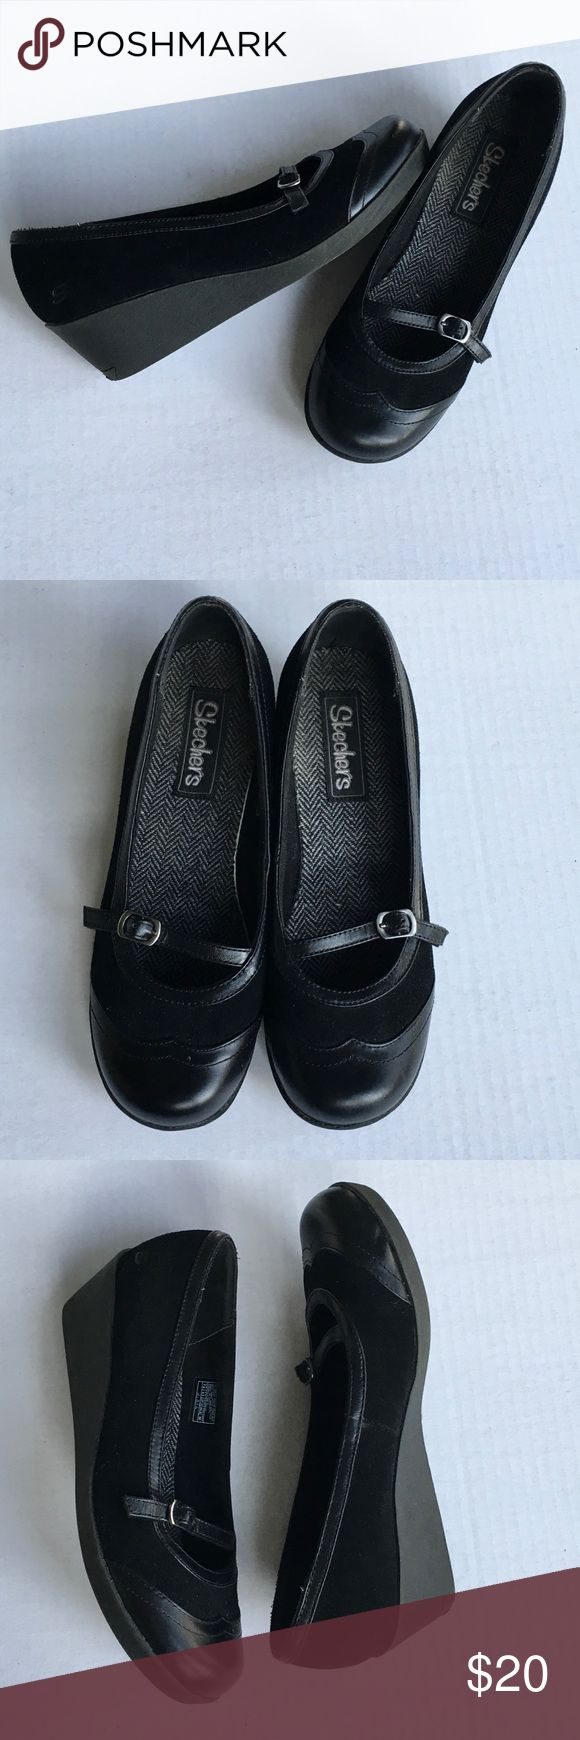 "Black Skechers Low Wedge Suede & Leather Size 7.5 Super versatile, cute low wedge style shoes with a Mary Jane style loafer look. EUC Black Suede and Leather upper with a 2"" wedge. US Women's Size 7 1/2 Skechers Shoes Wedges"